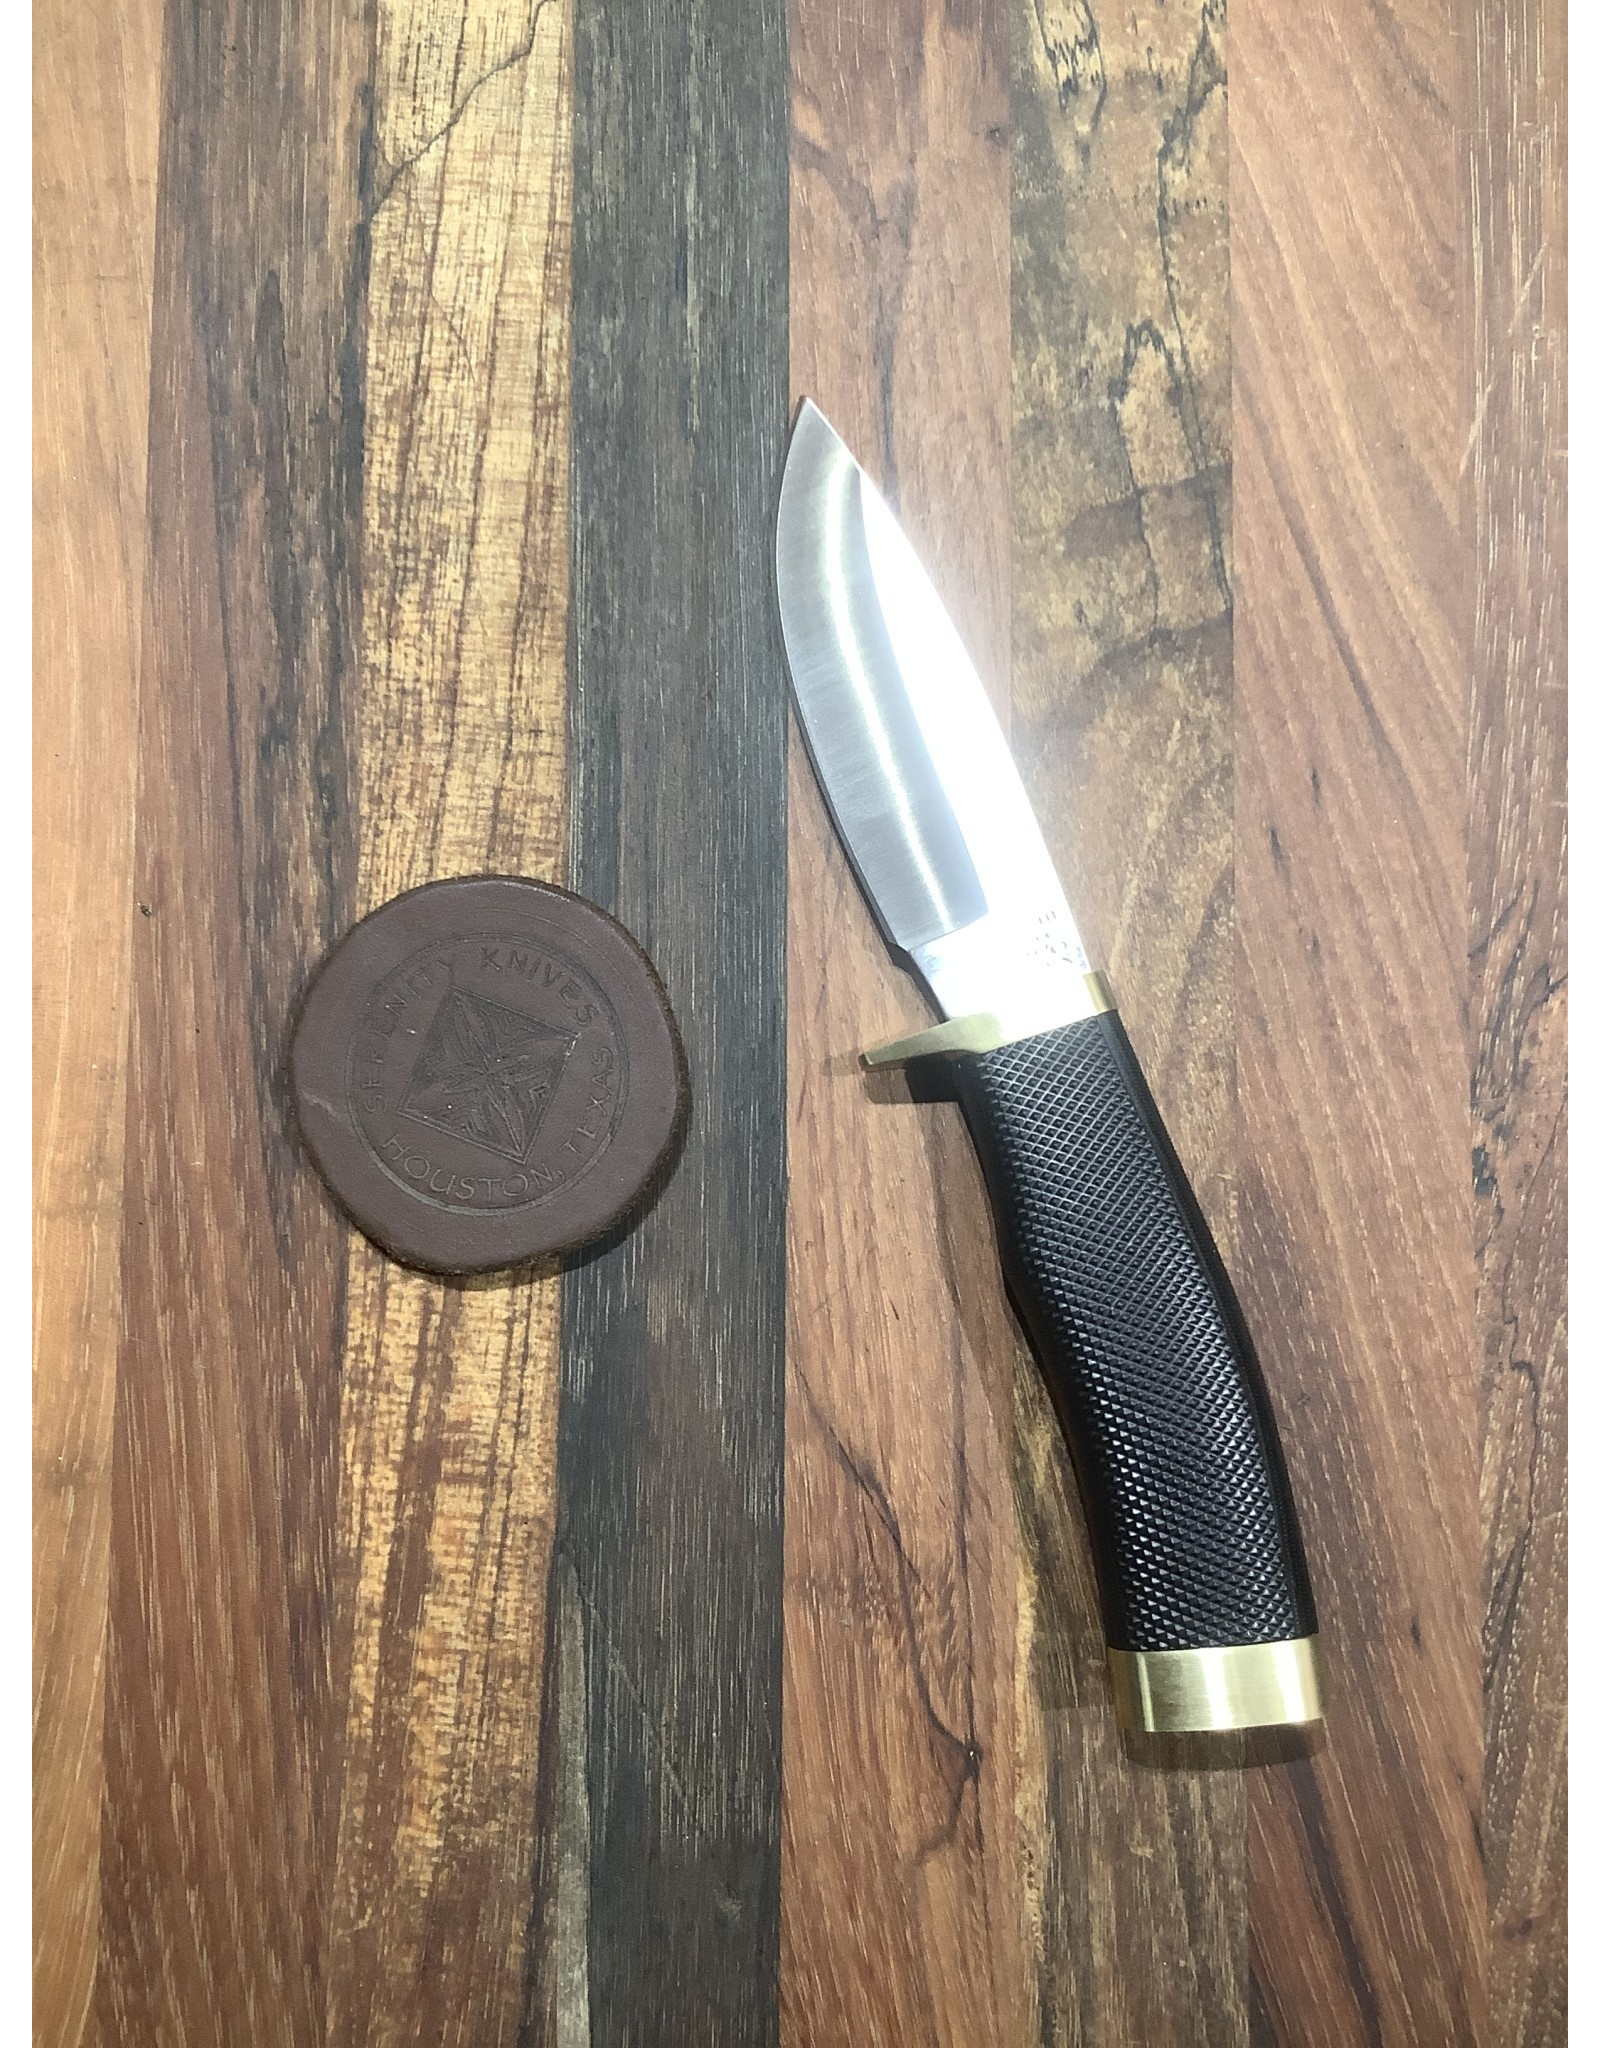 Buck BUCK Vanguard with Texturized Rubber